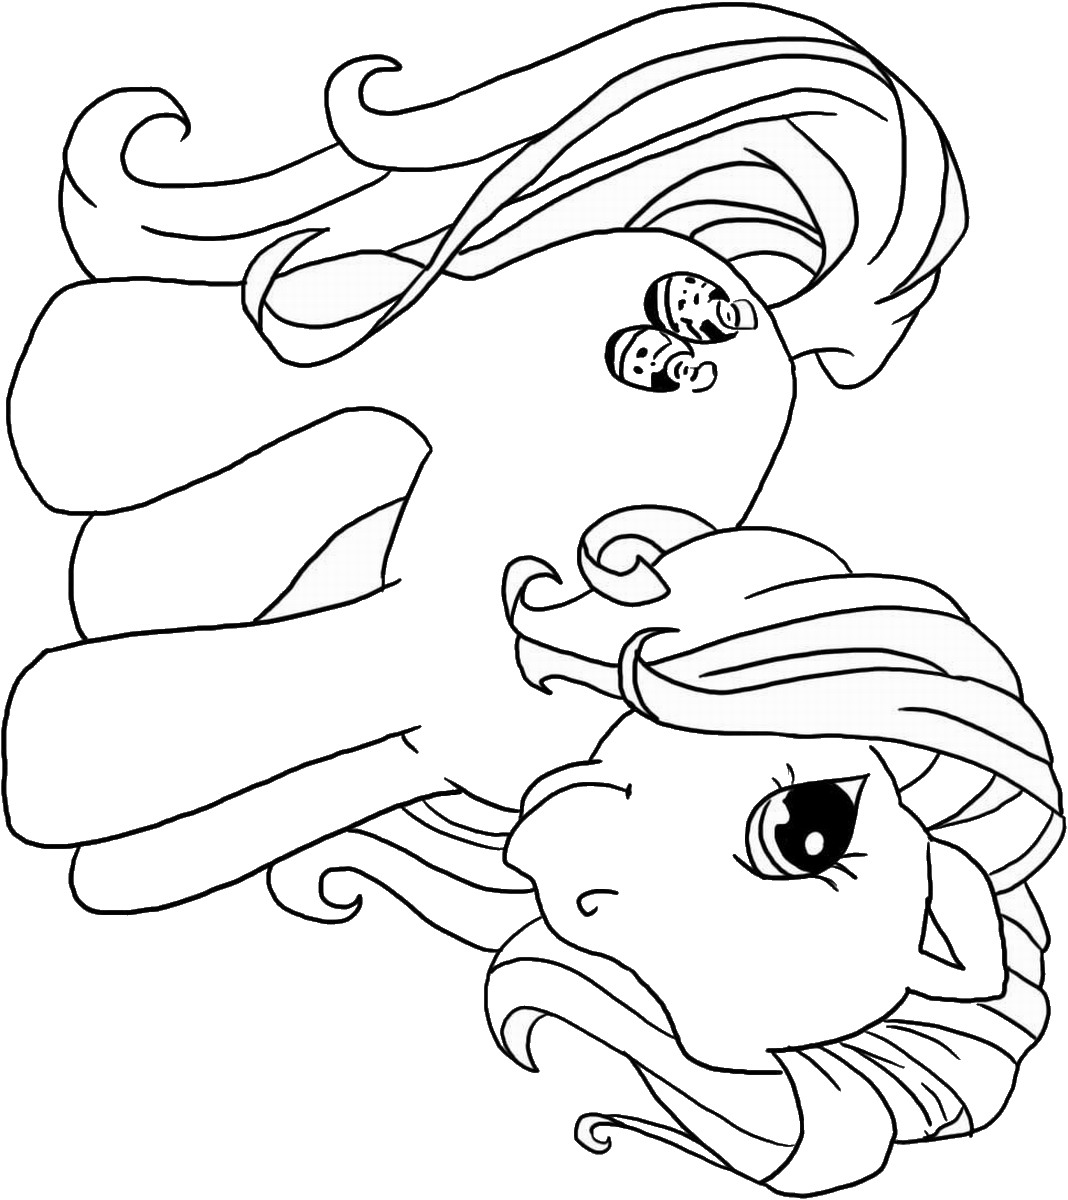 mlp colouring my little pony coloring pages team colors mlp colouring 1 1